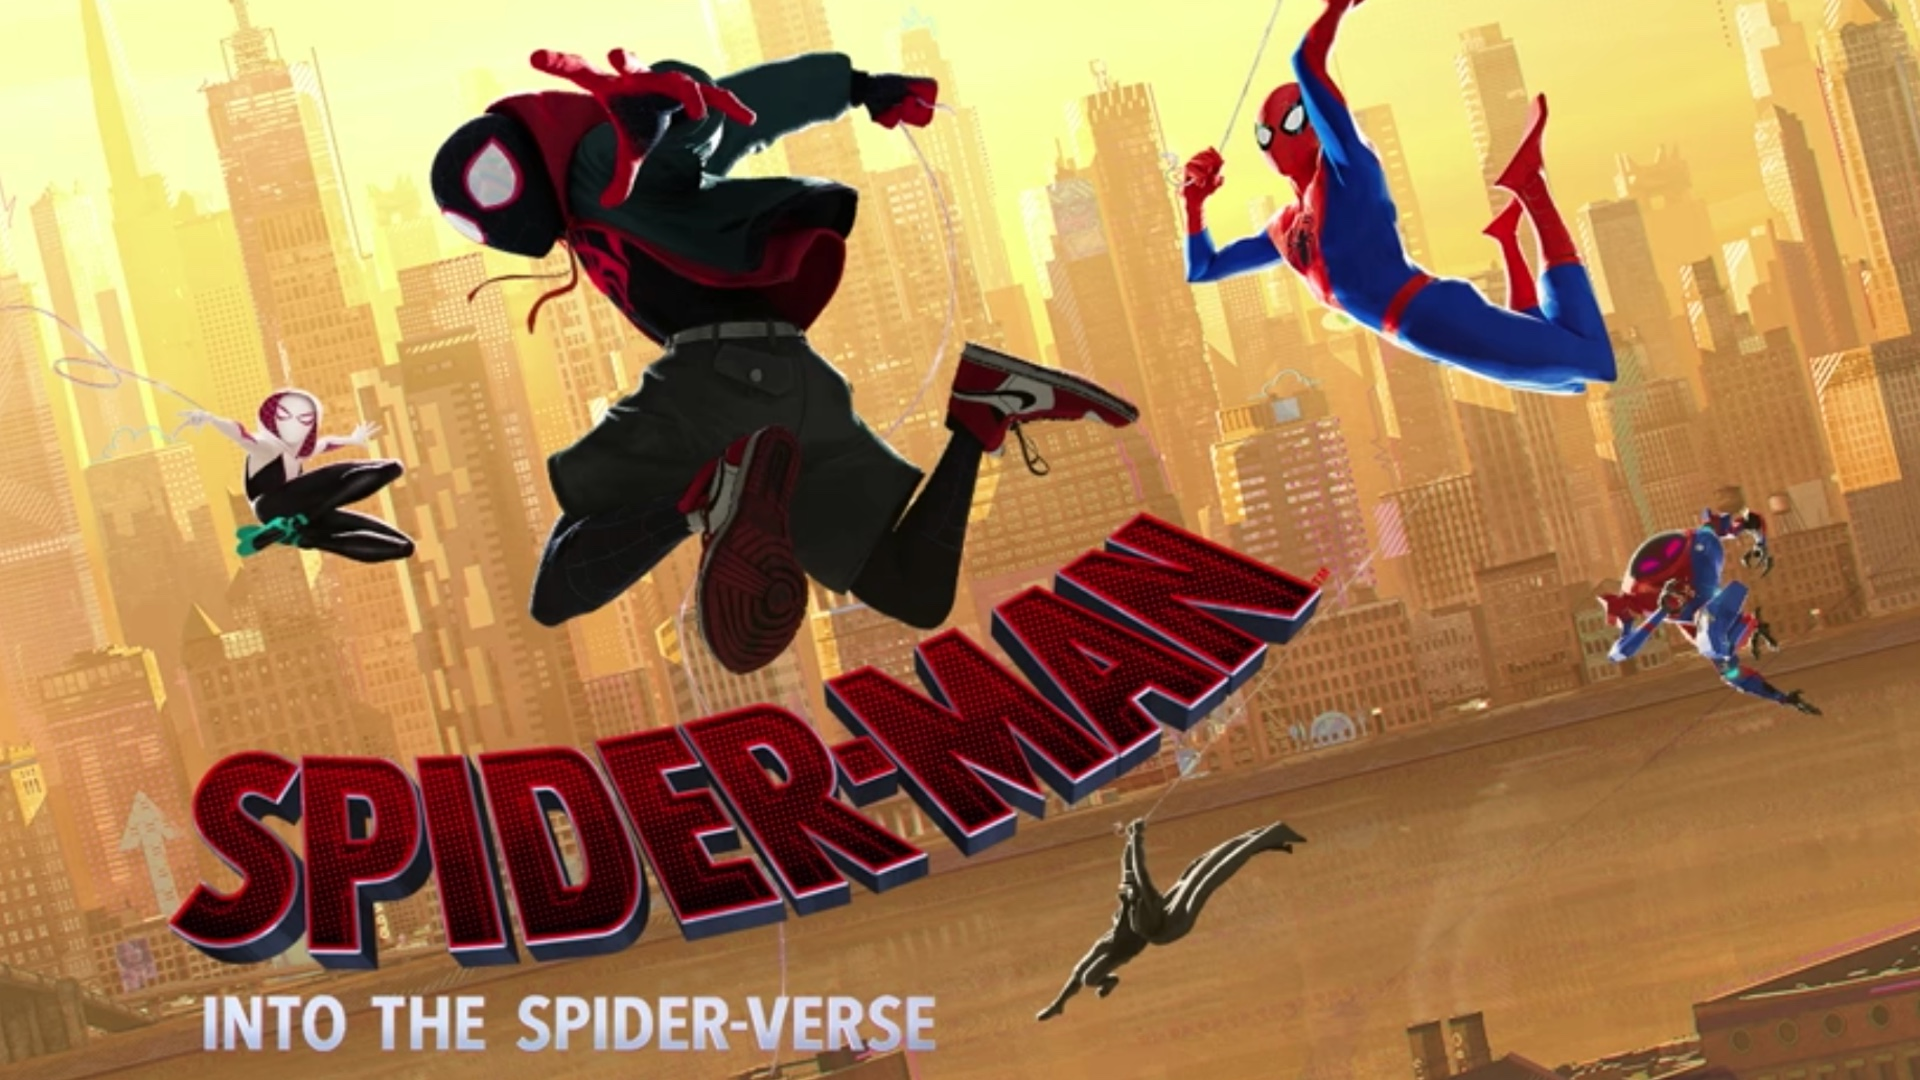 spectacularly-radical-new-trailer-for-spider-man-into-the-spider-verse-social.jpg